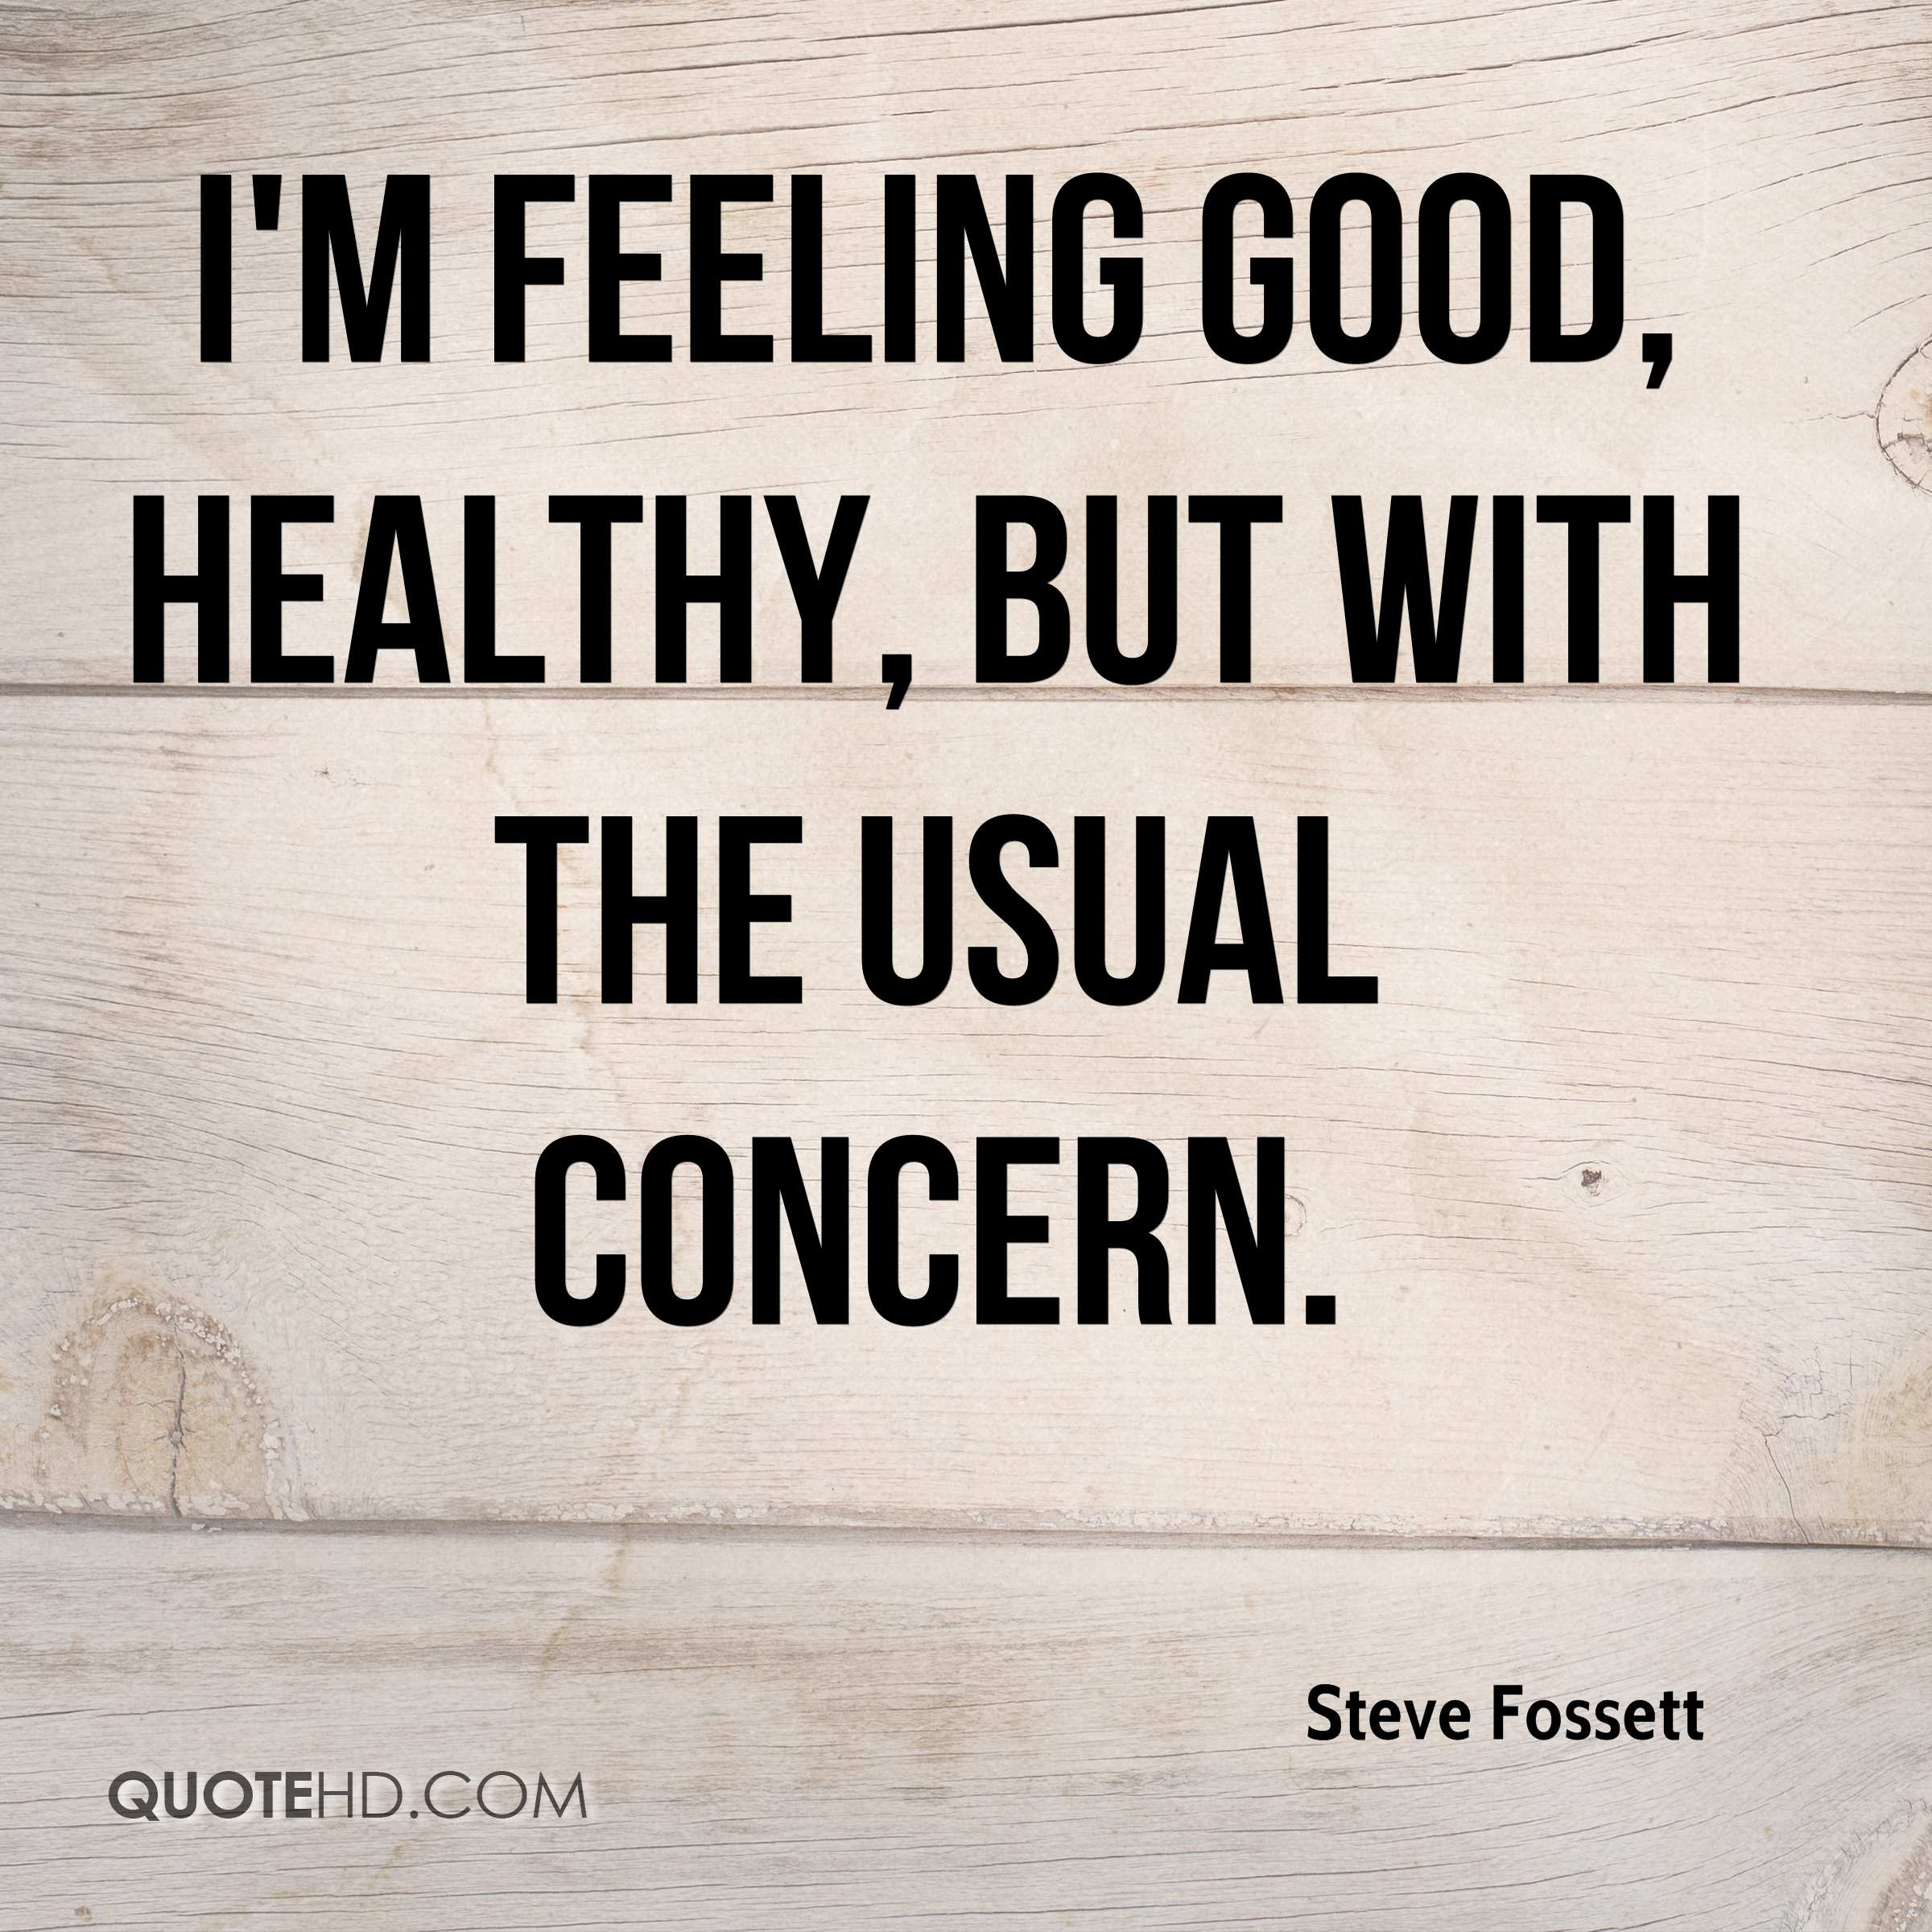 I'm feeling good, healthy, but with the usual concern.